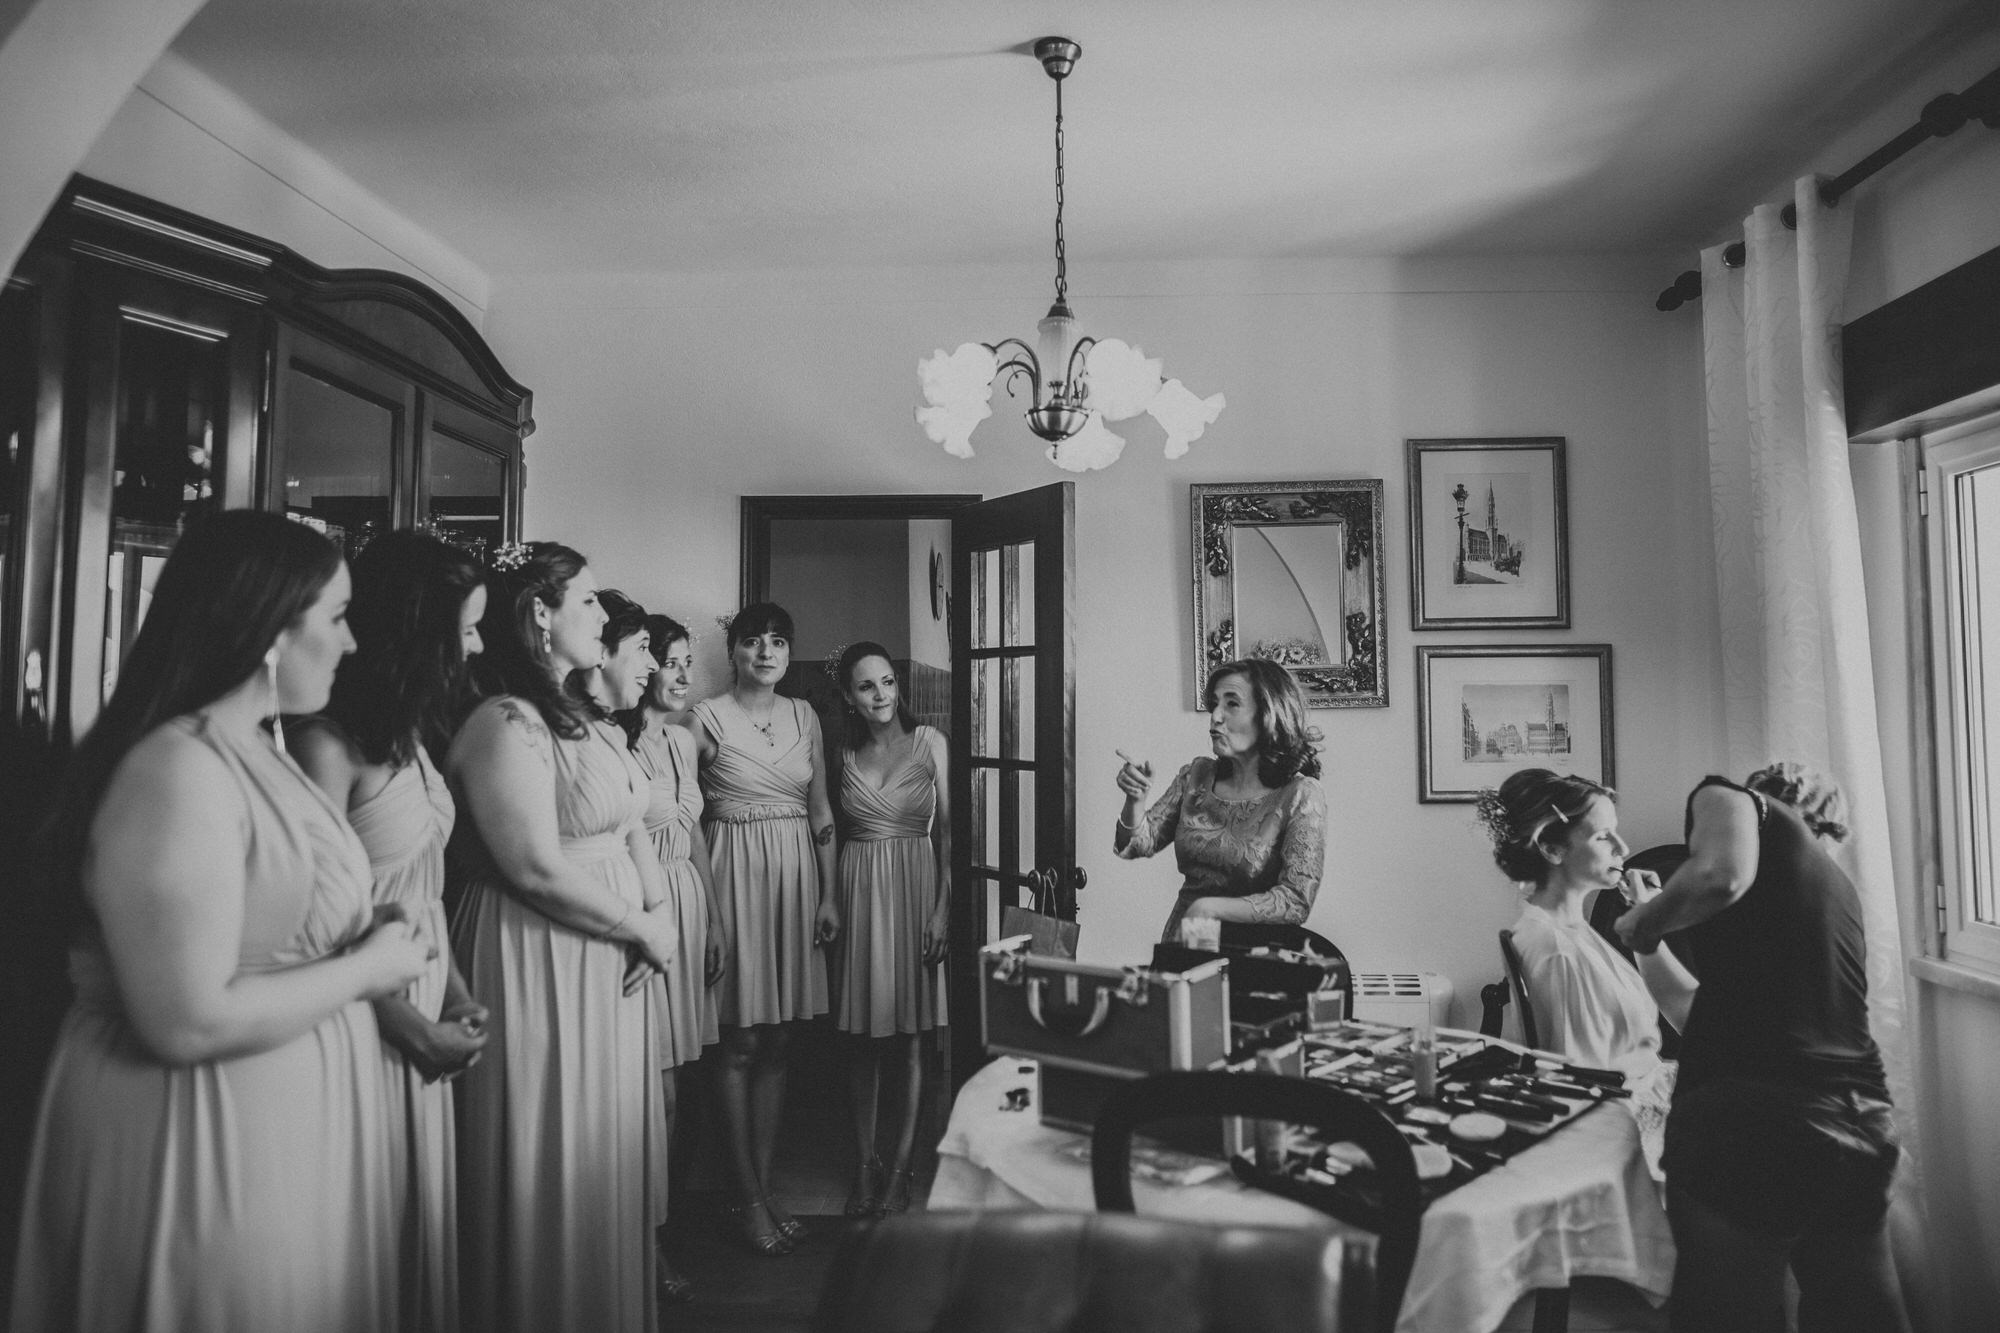 Filipe Santiago Fotografia-fotografo-malveira-lisboa-cascais-mafra-melhores-reportagem-wedding-photography-portugal-lisbon-best-natural-casamentos-lifestyle-bride-ideias-rustic-boho-hair-mackup-damas-preparativos-preparations-bridemaids-dress-storie-mother